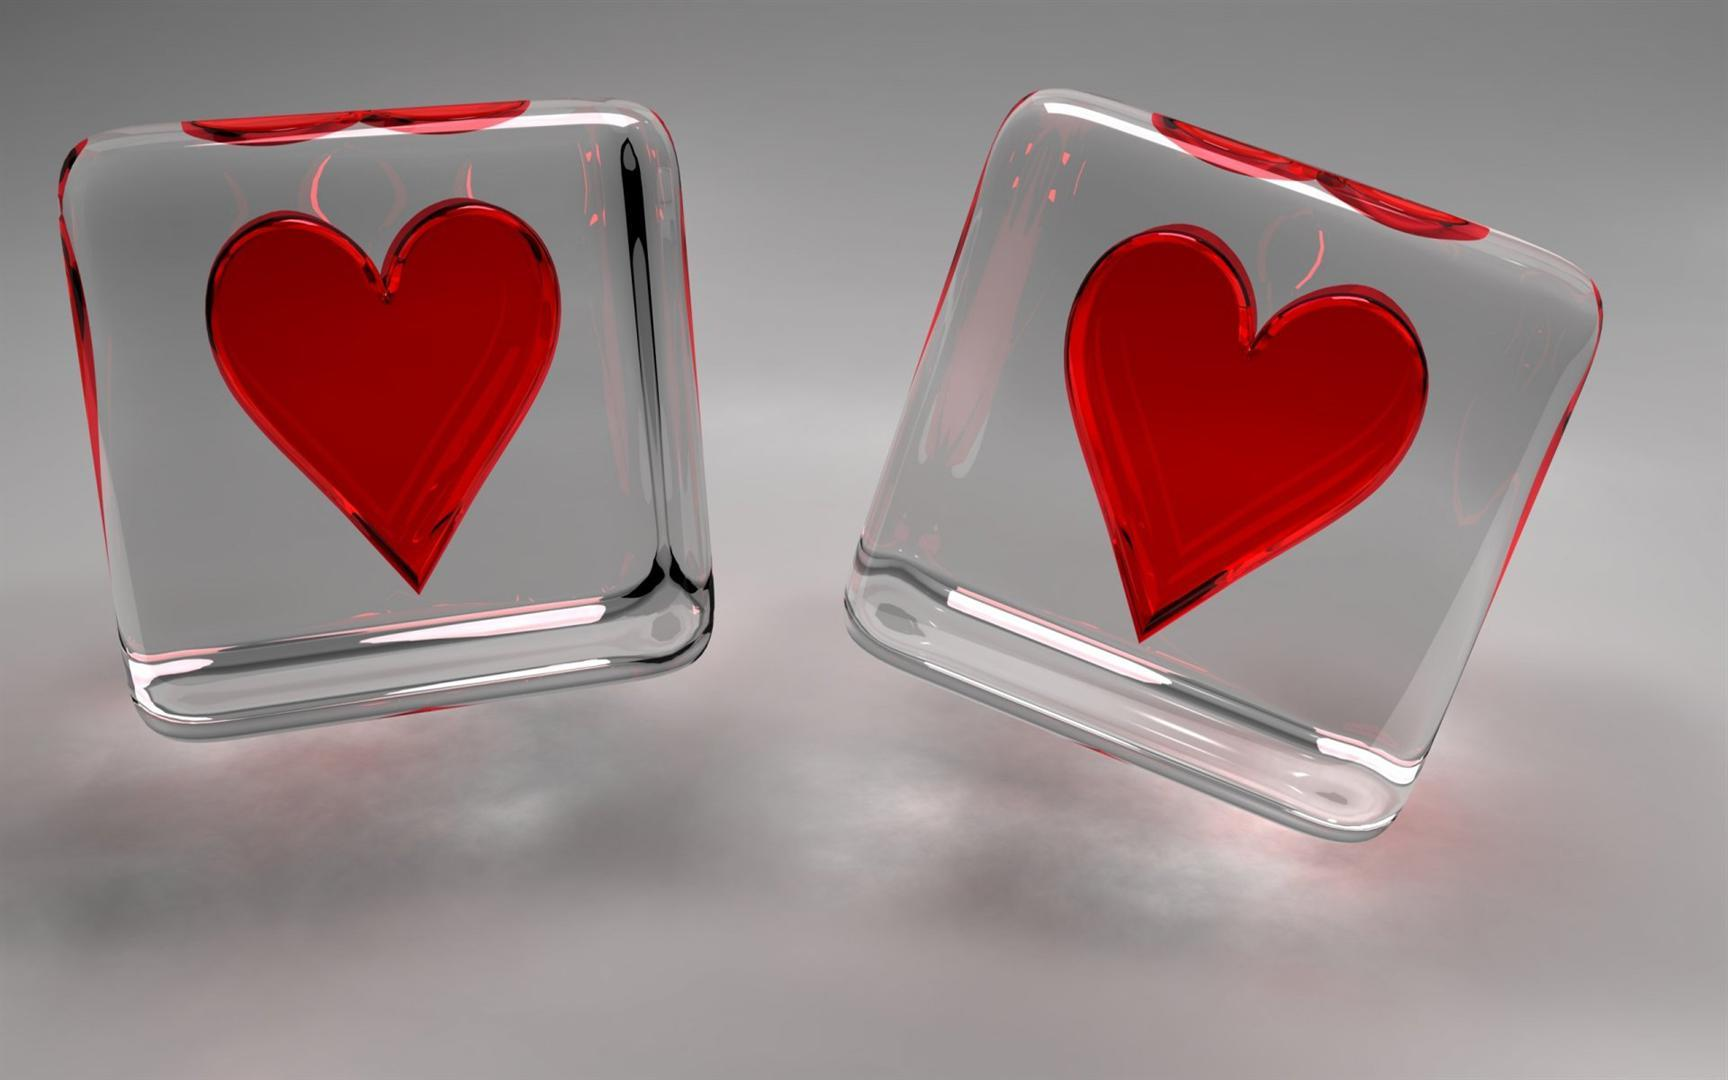 Love Images Hd And 3d : 3d Love Wallpapers - Wallpaper cave